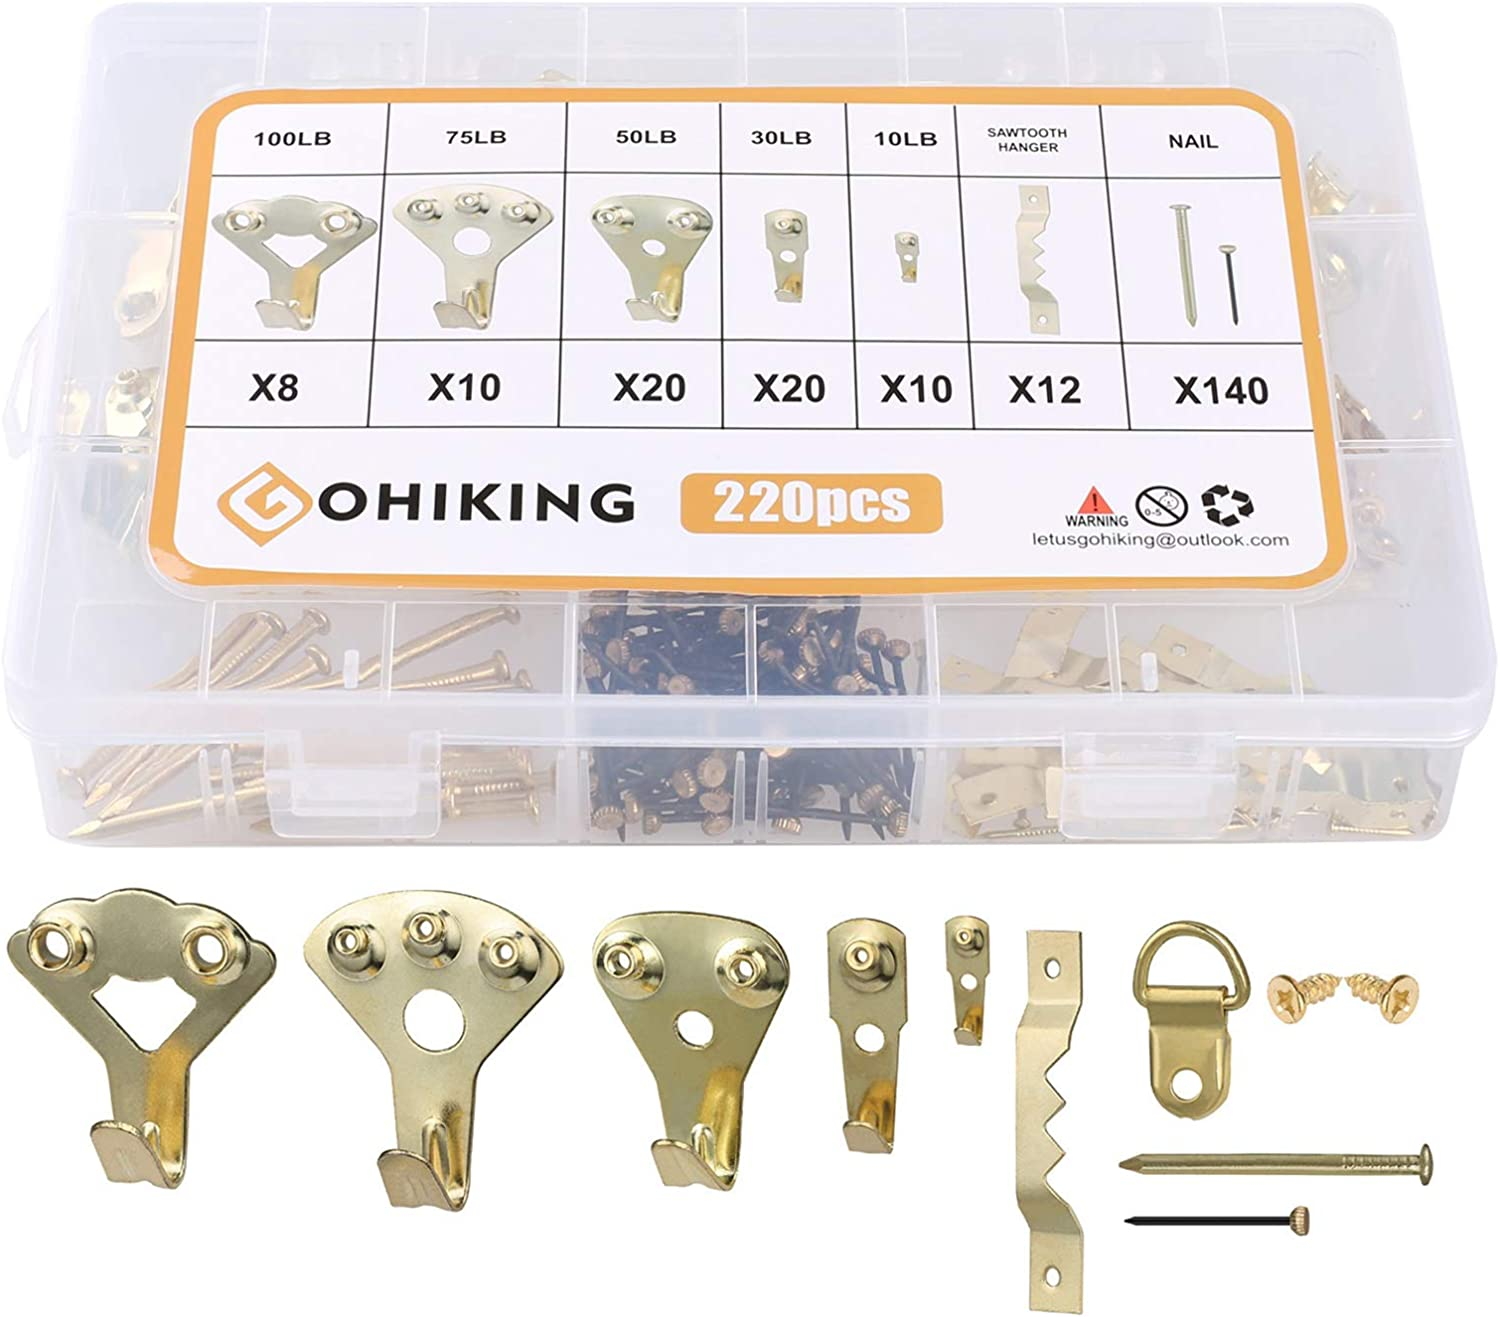 GOHIKING Heavy Duty Picture Hanger Hooks with Nails Kit | Drywall Plaster Wood Wall Frame Nails Hooks Hanging Kit for 30lbs Support - Picture Nails Hardware Kit for Home Office Pictures Galleries